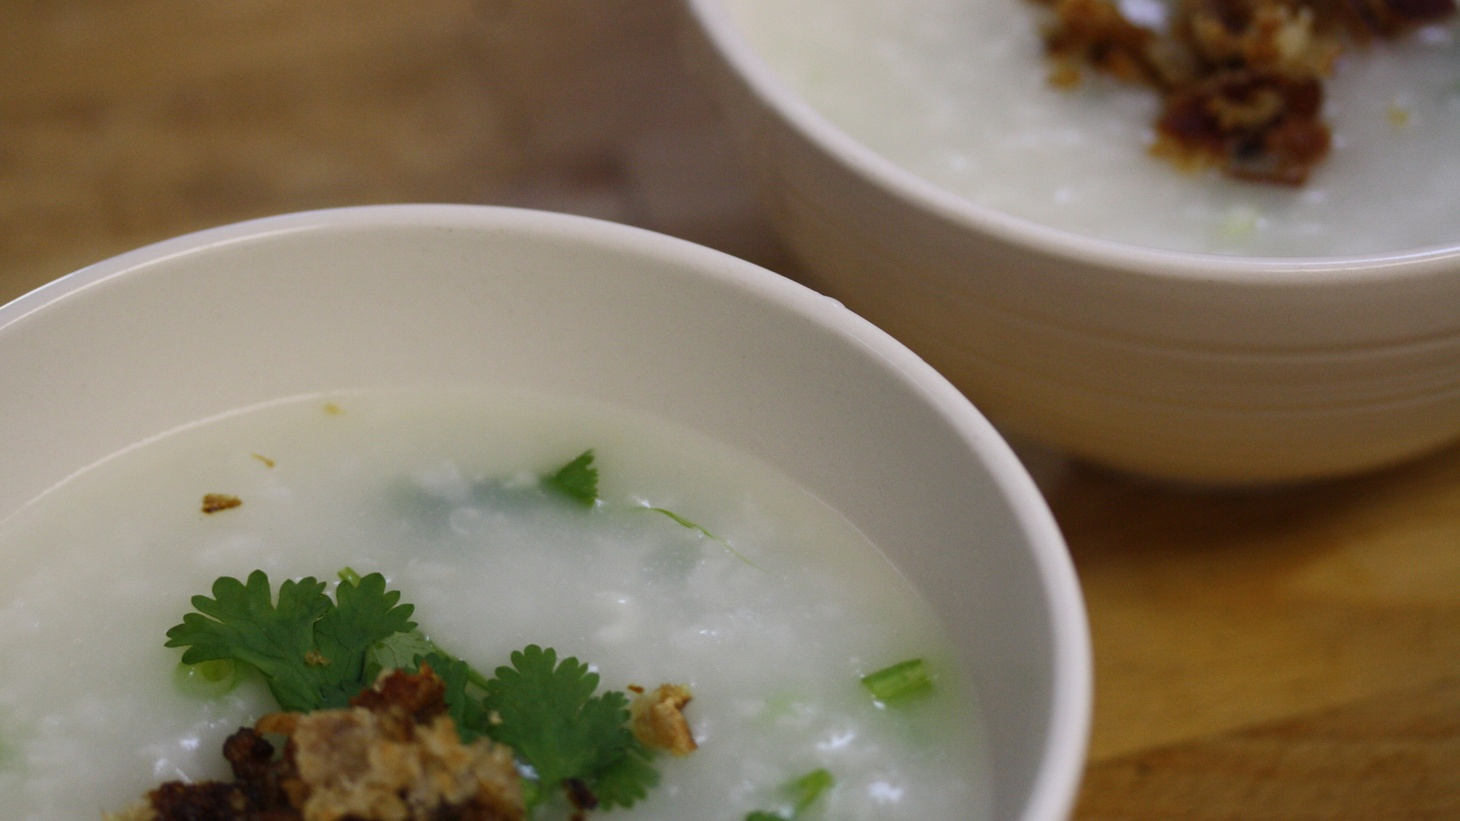 Where does Jonathan go to satisfy cravings for a Hong Kong-style breakfast? Delicious Food Corner in Monterey Park to dip Chinese crullers wrapped in rice noodles into steaming bowls of congee topped with minced pork and salted mustard greens.